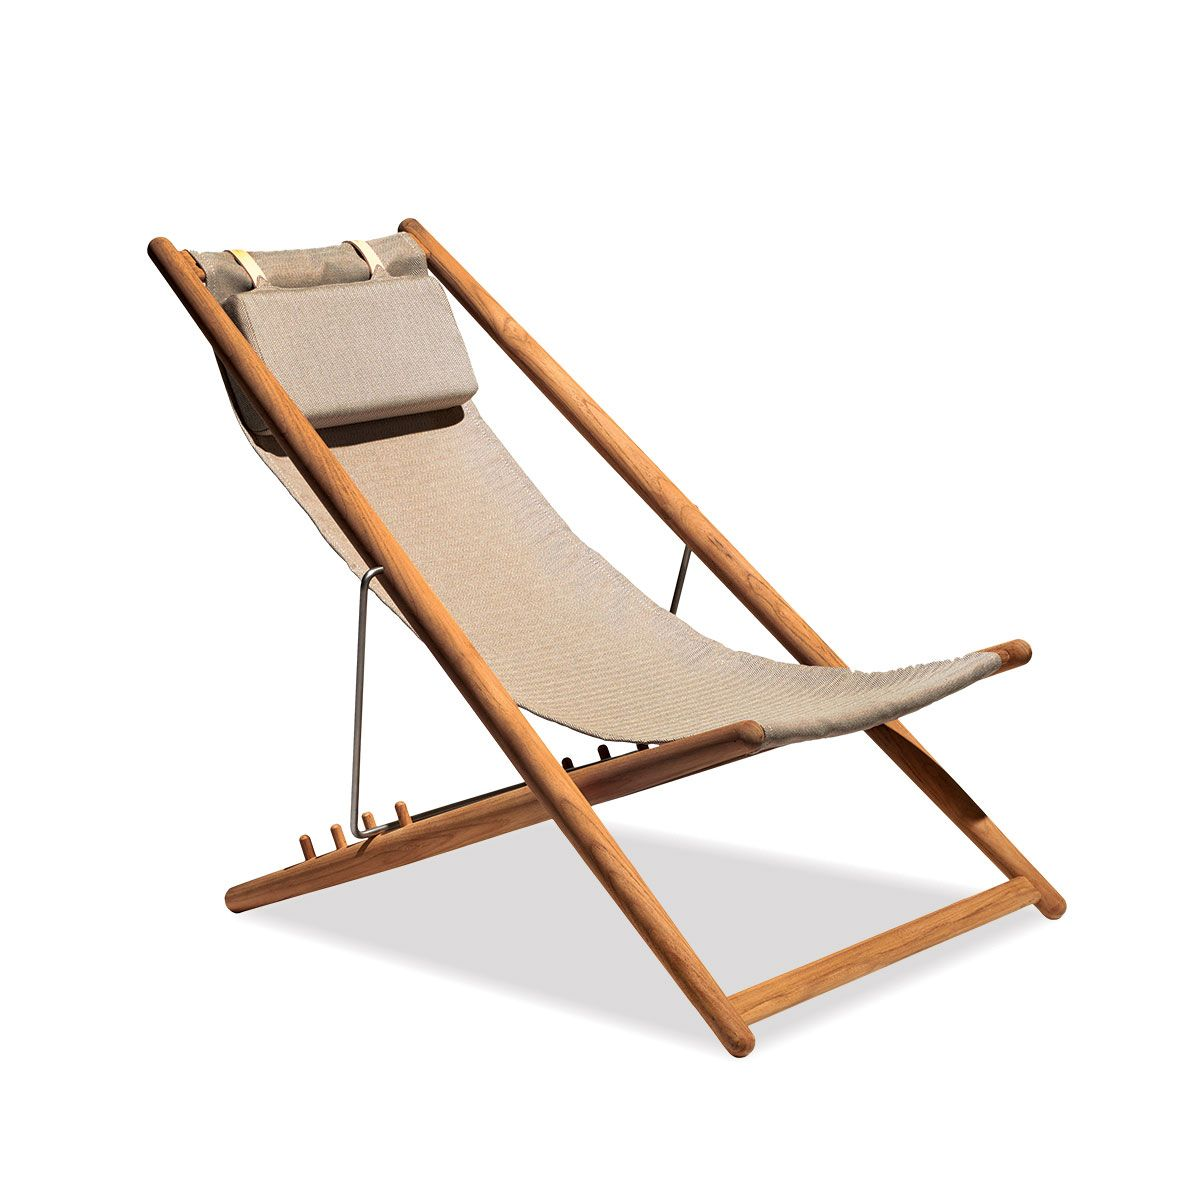 Wonderful Teak Adjustable Outdoor Sling Chair In Natural | Ihland Collection .